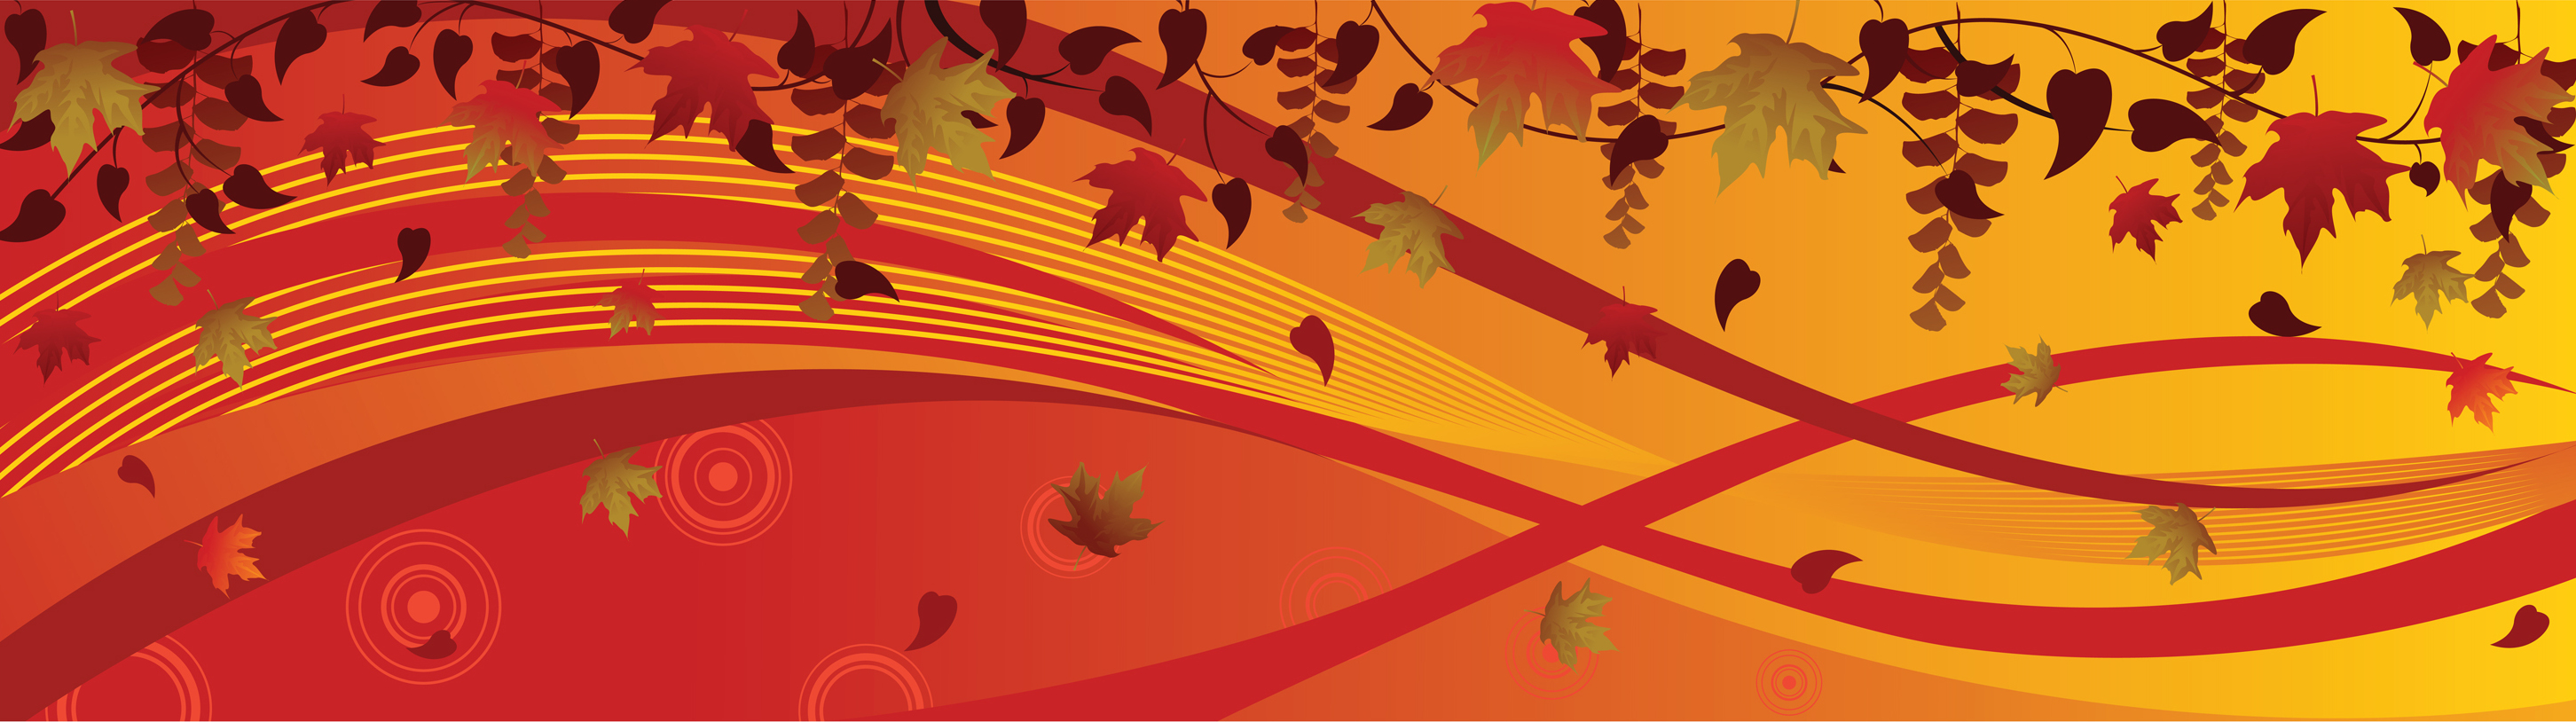 Celebrate someone special in your life by sending them these colorful autumn leaves.